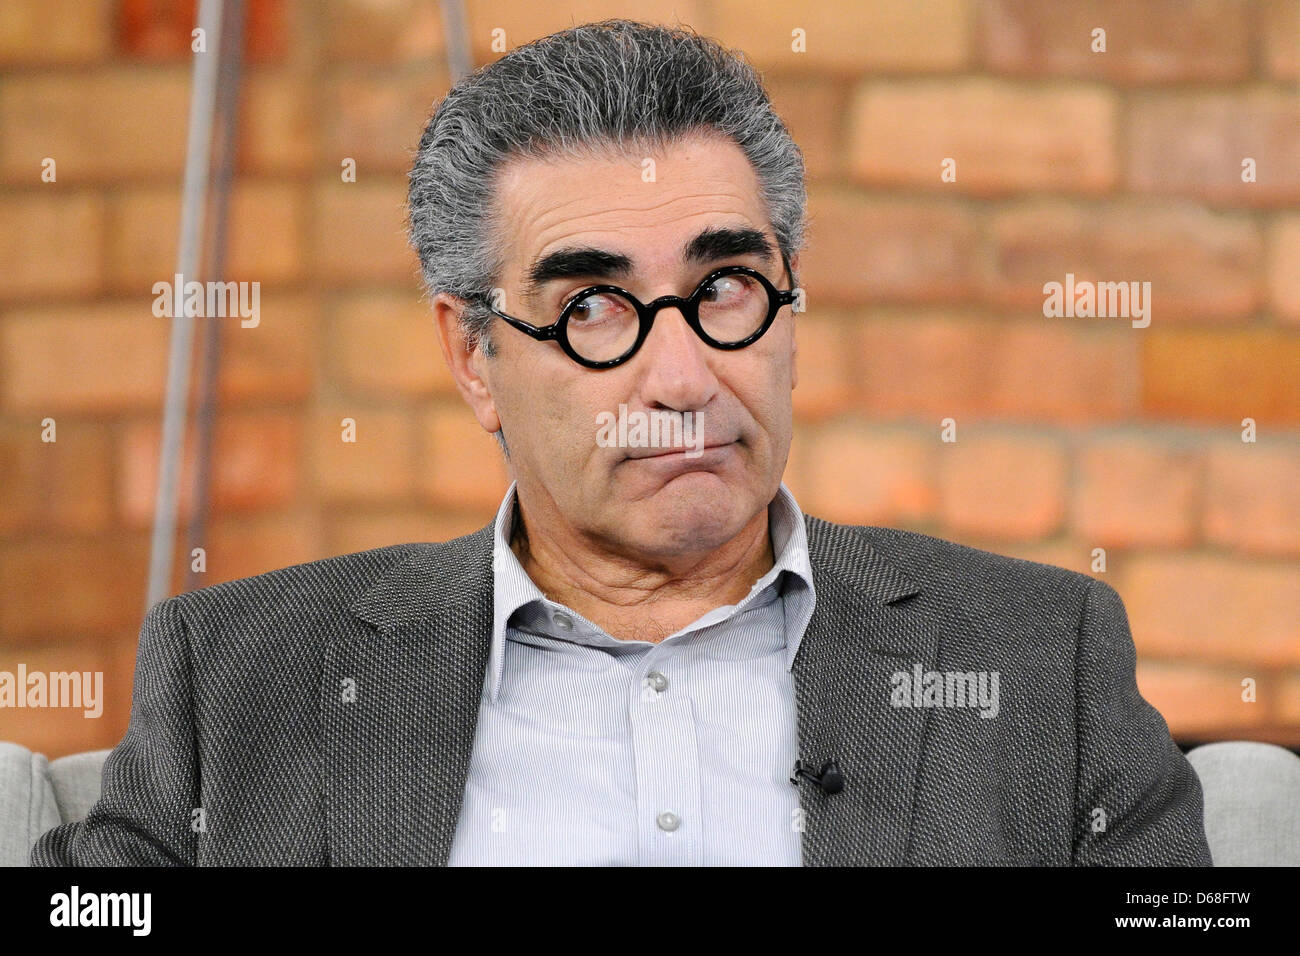 Eugene Levy appears on CTV's The Marilyn Denis Show Toronto, Canada - Stock Image